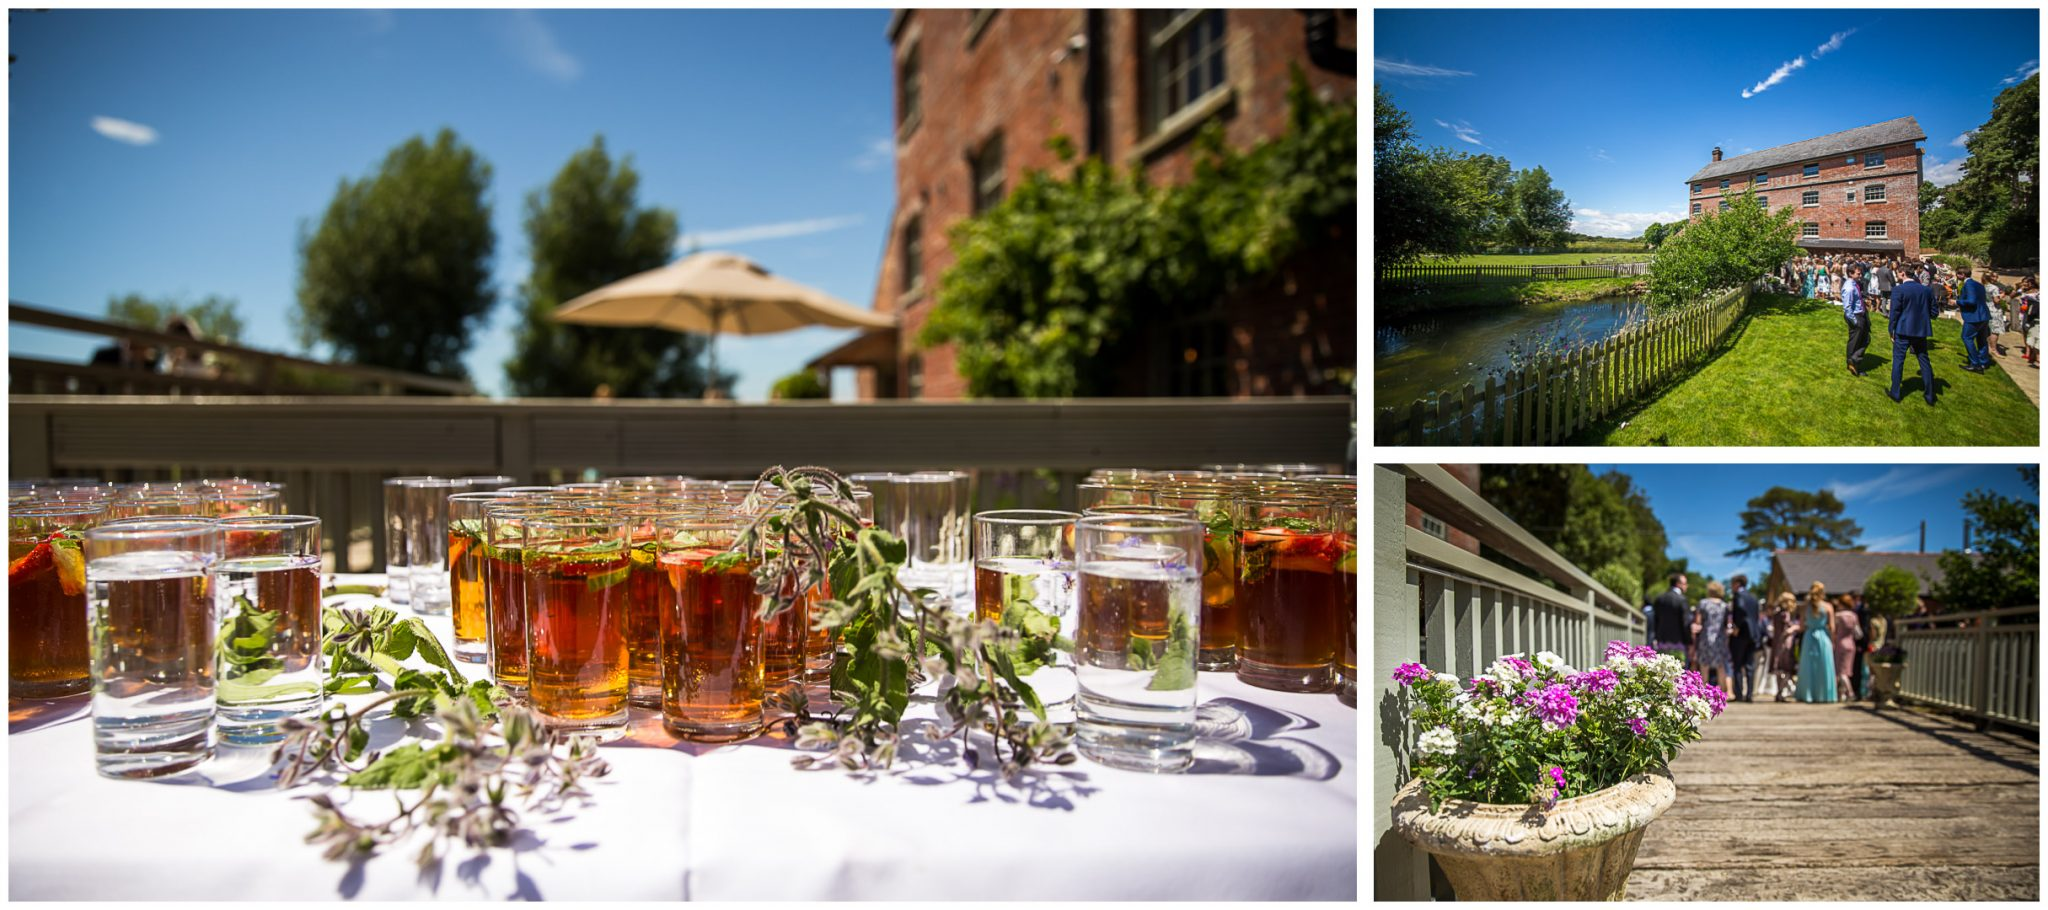 Sopley Mill Summer wedding drinks and canapes on the terrace